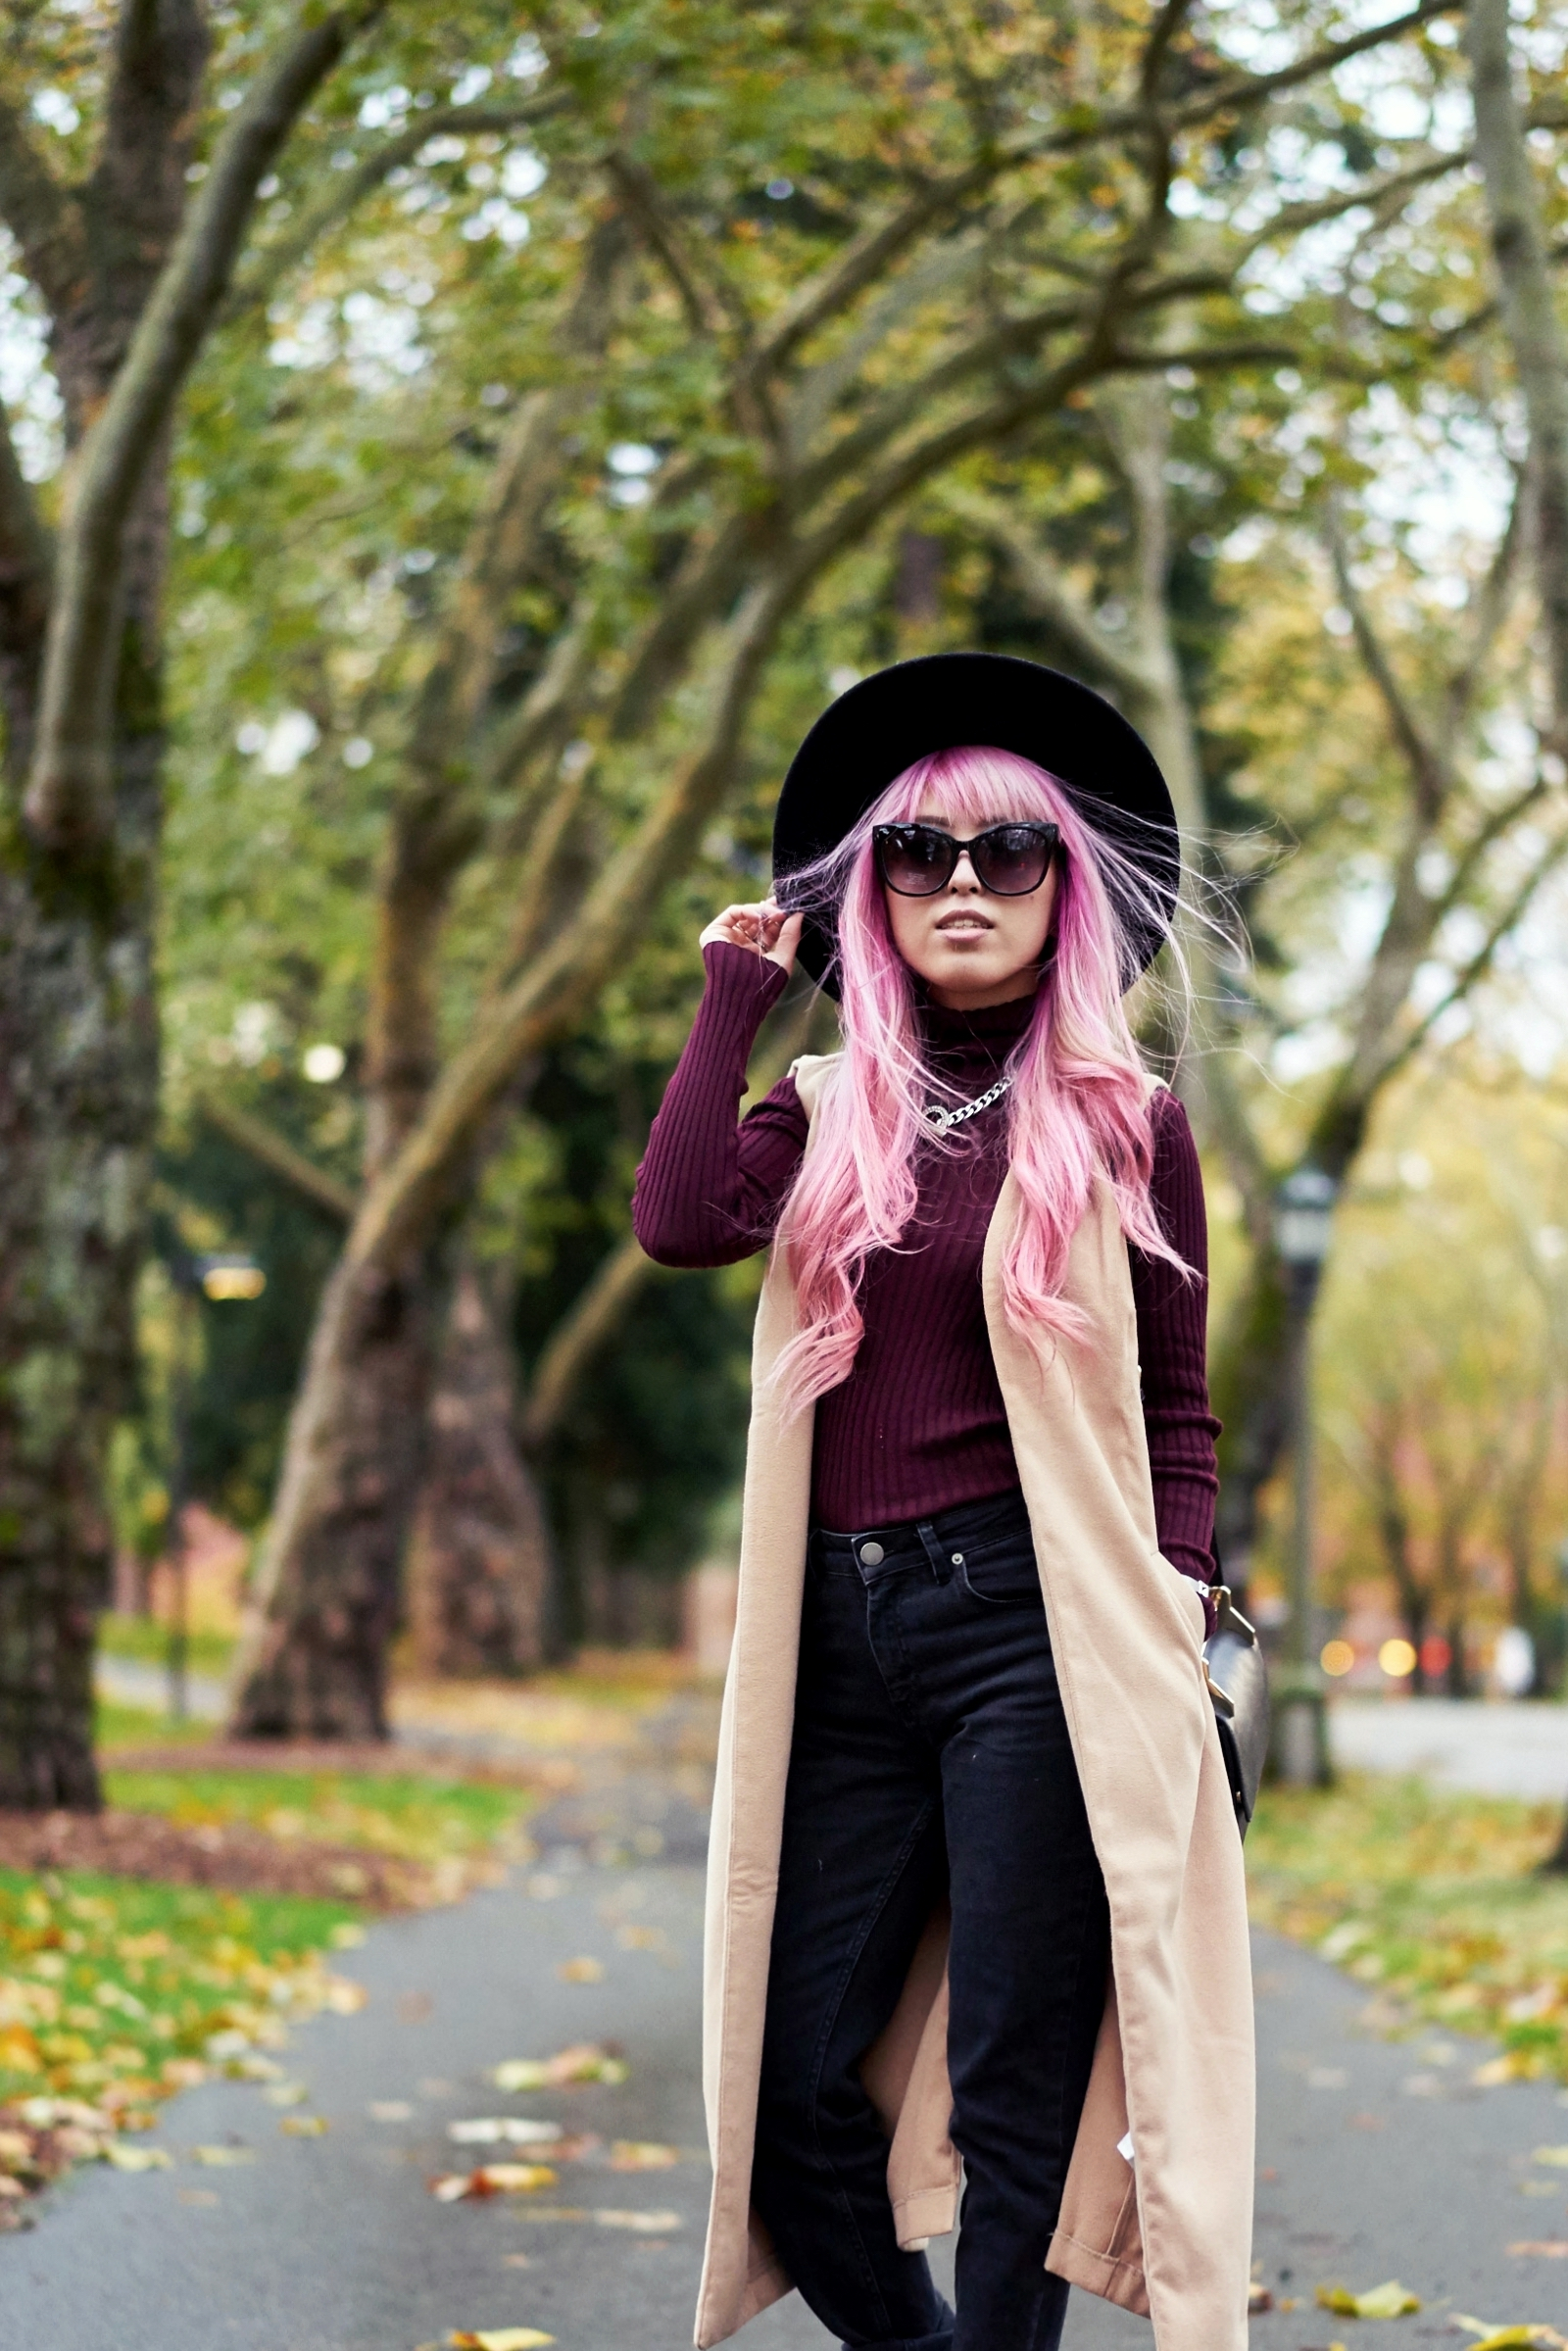 Forever 21 Fedora_Who What Wear : Target Rib Turtleneck_ASOS High Waist Mom Jeans_Ego Floral Print Ankle Boots_Christian Paul Marble Watch_Aika's Love Closet_Seattle Fashion Blogger_Japanese_Pink Hair 9